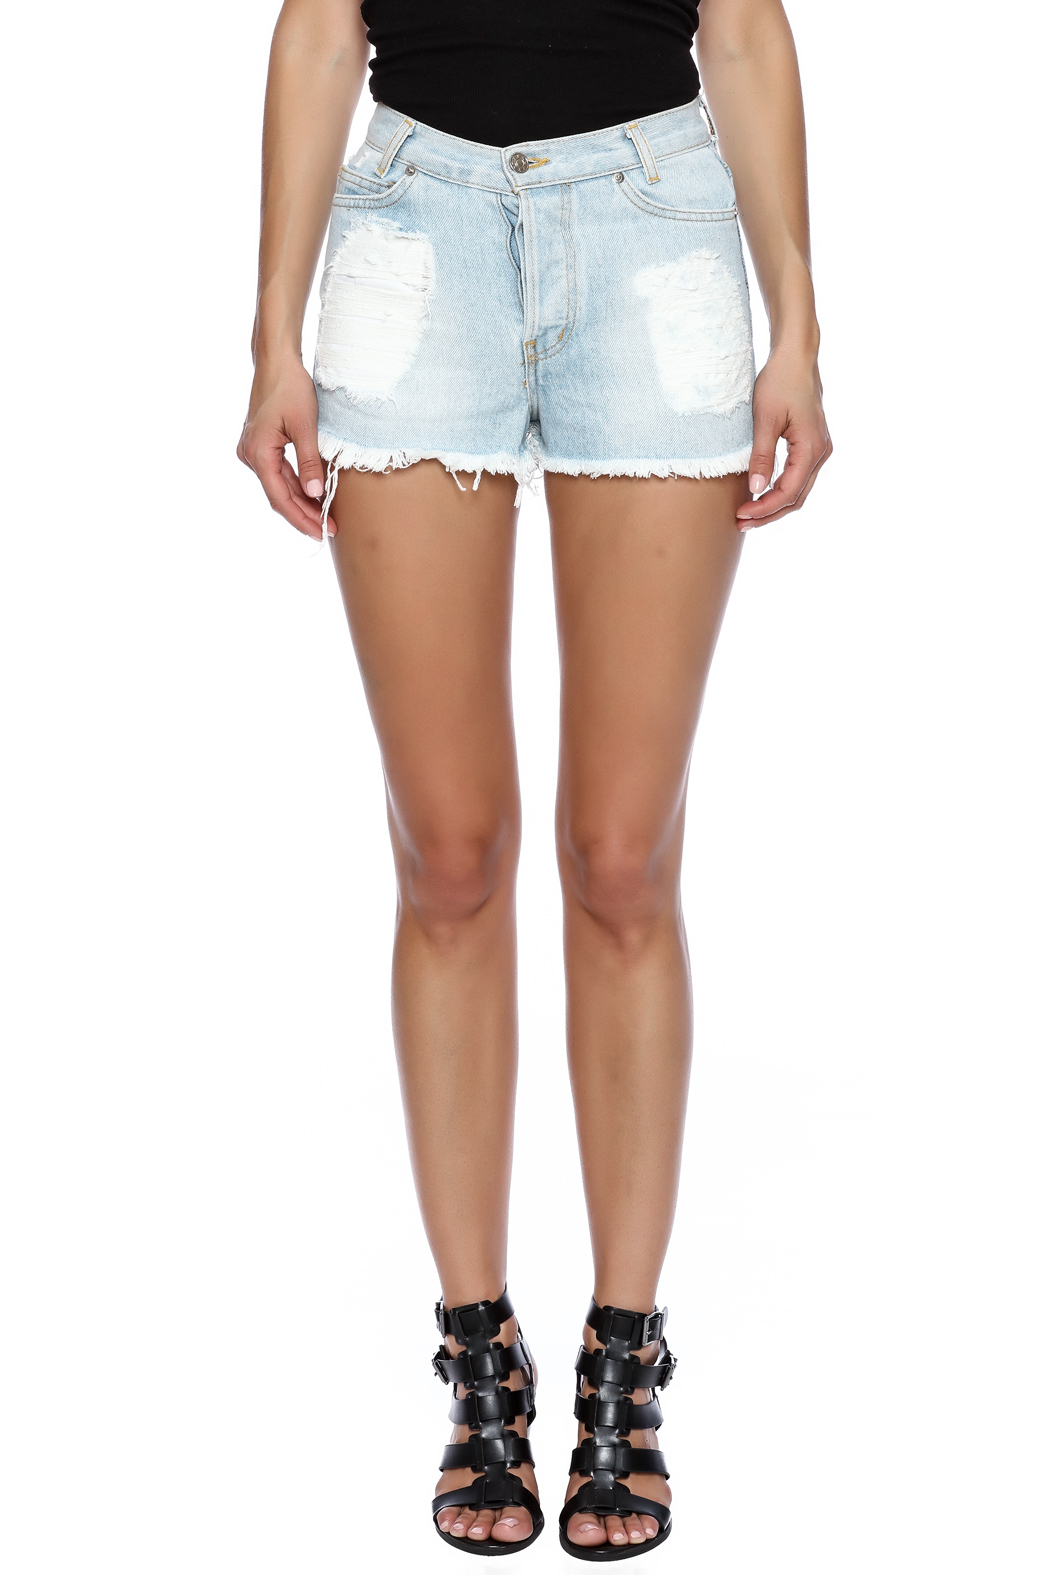 John Galt Light Denim Shorts from Austin by Cotone u2014 Shoptiques